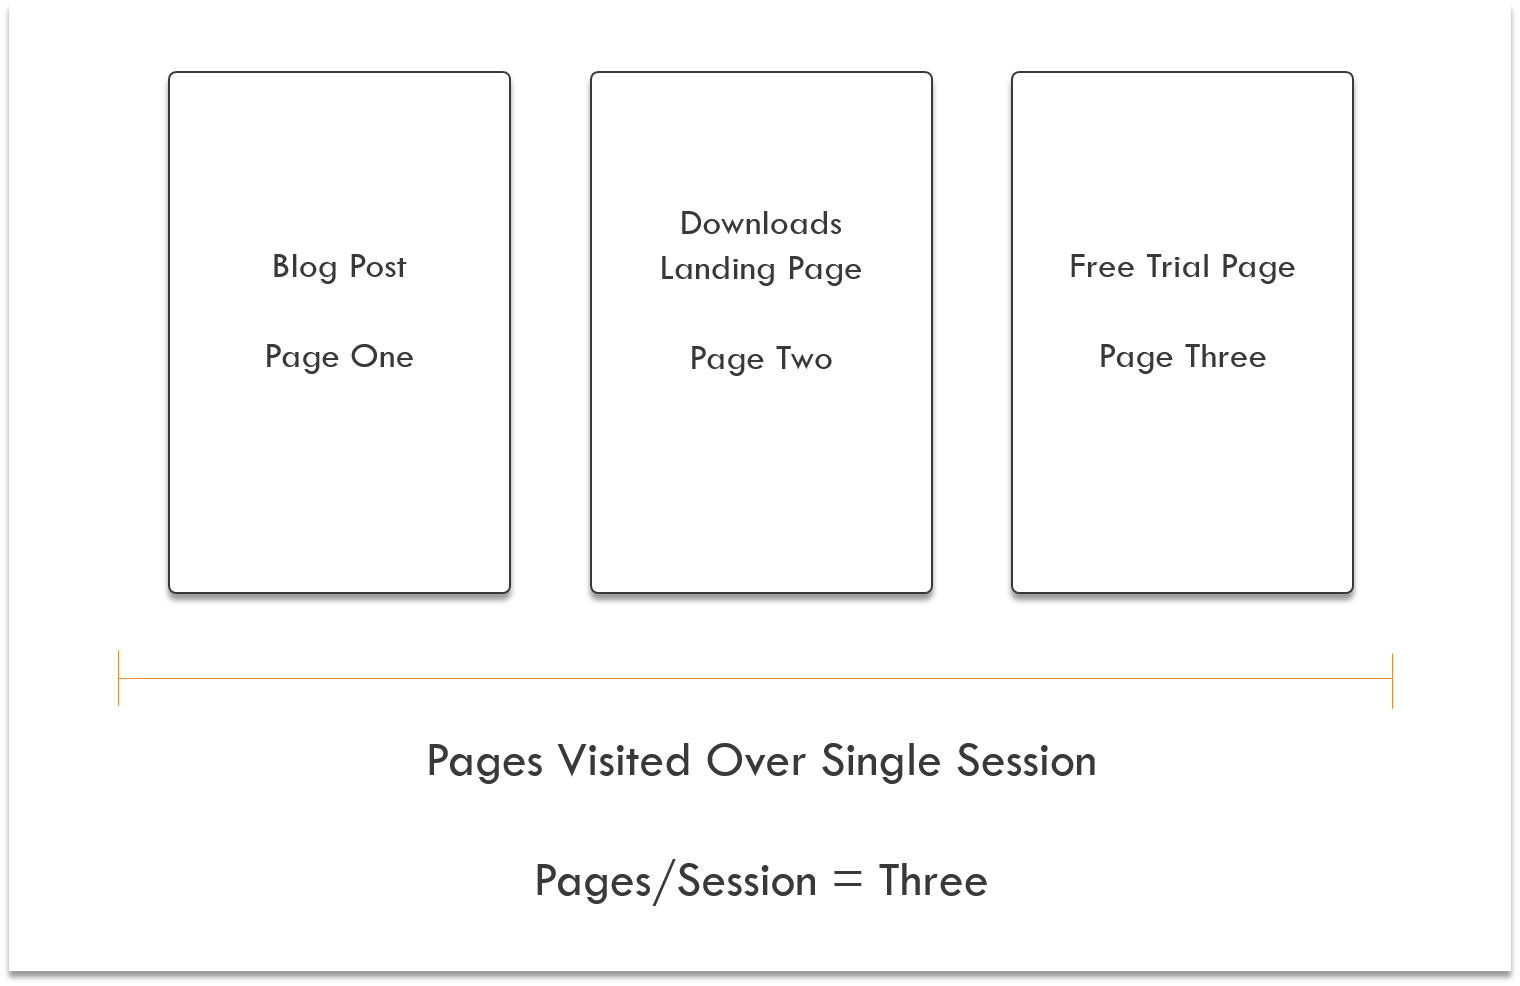 Content Engagement Metrics Pages per Session Explanation